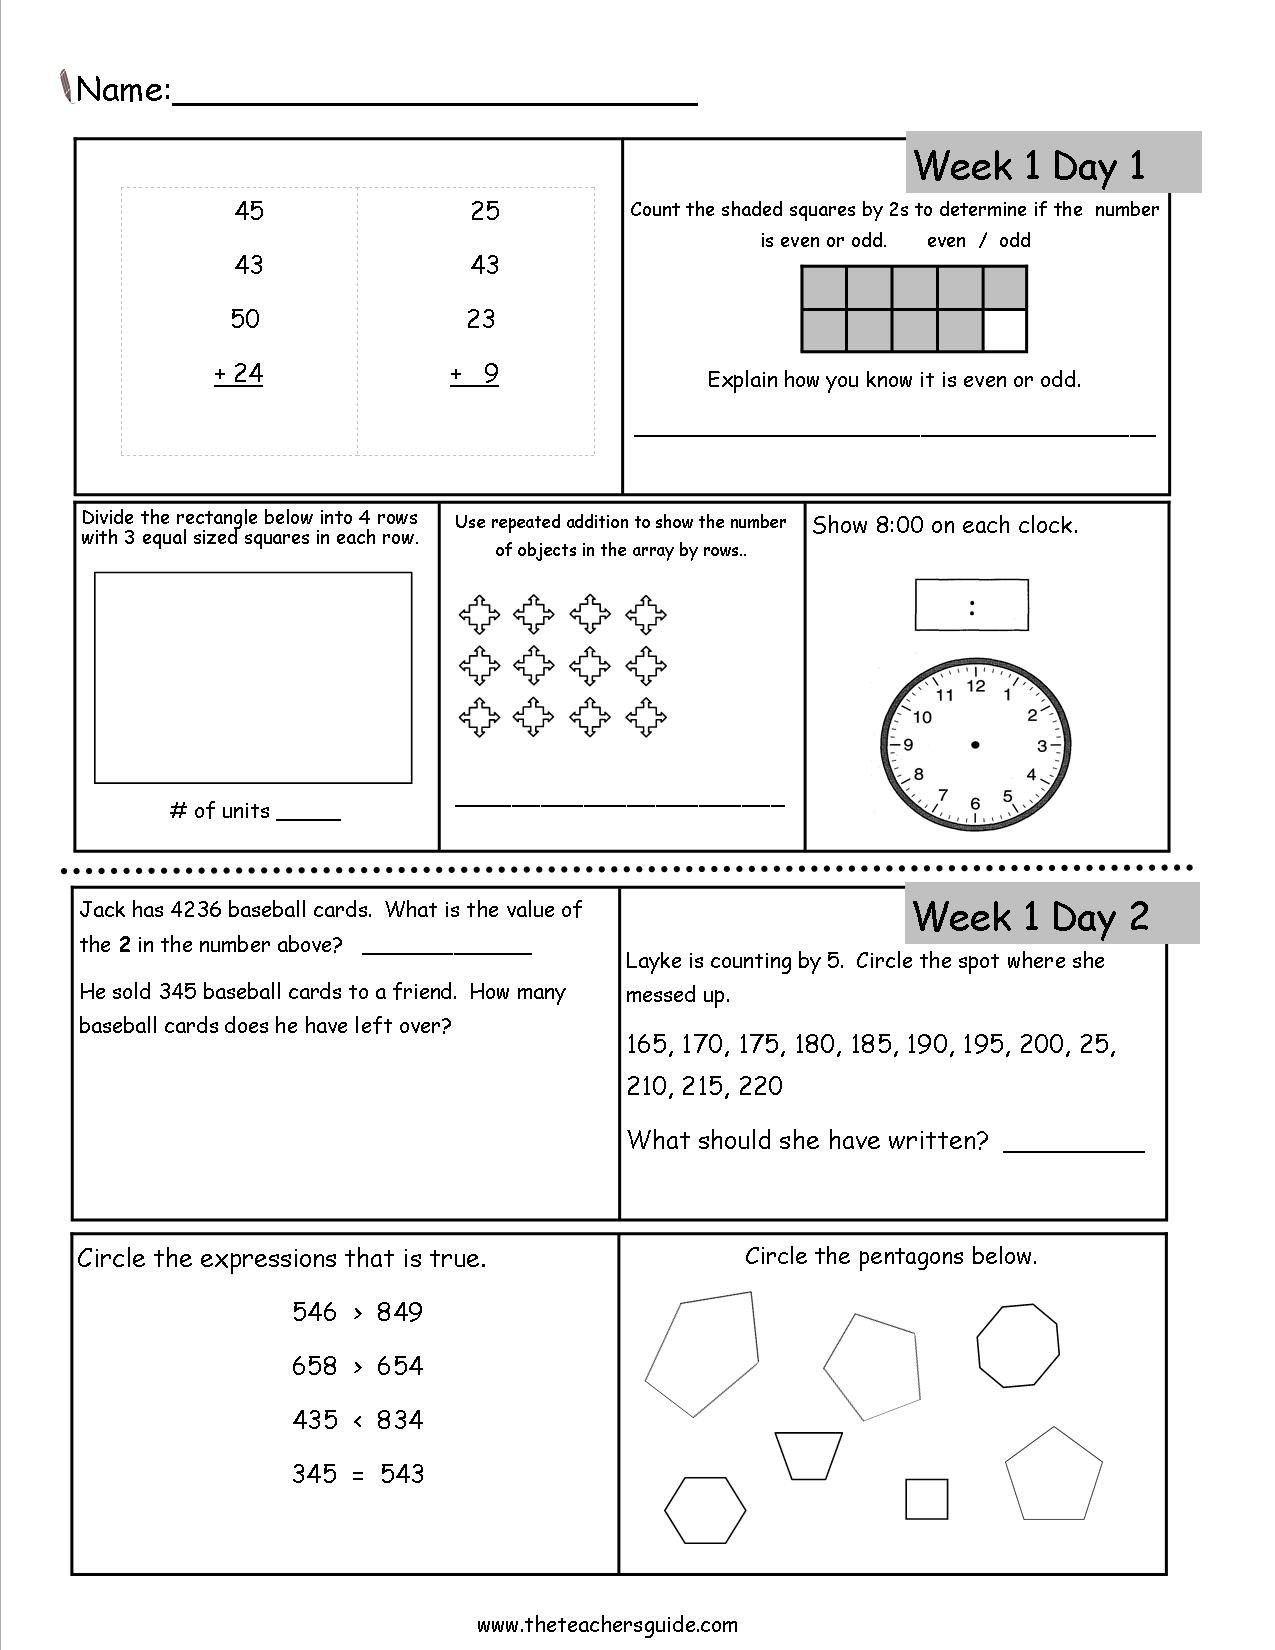 Division Worksheet For Class 3